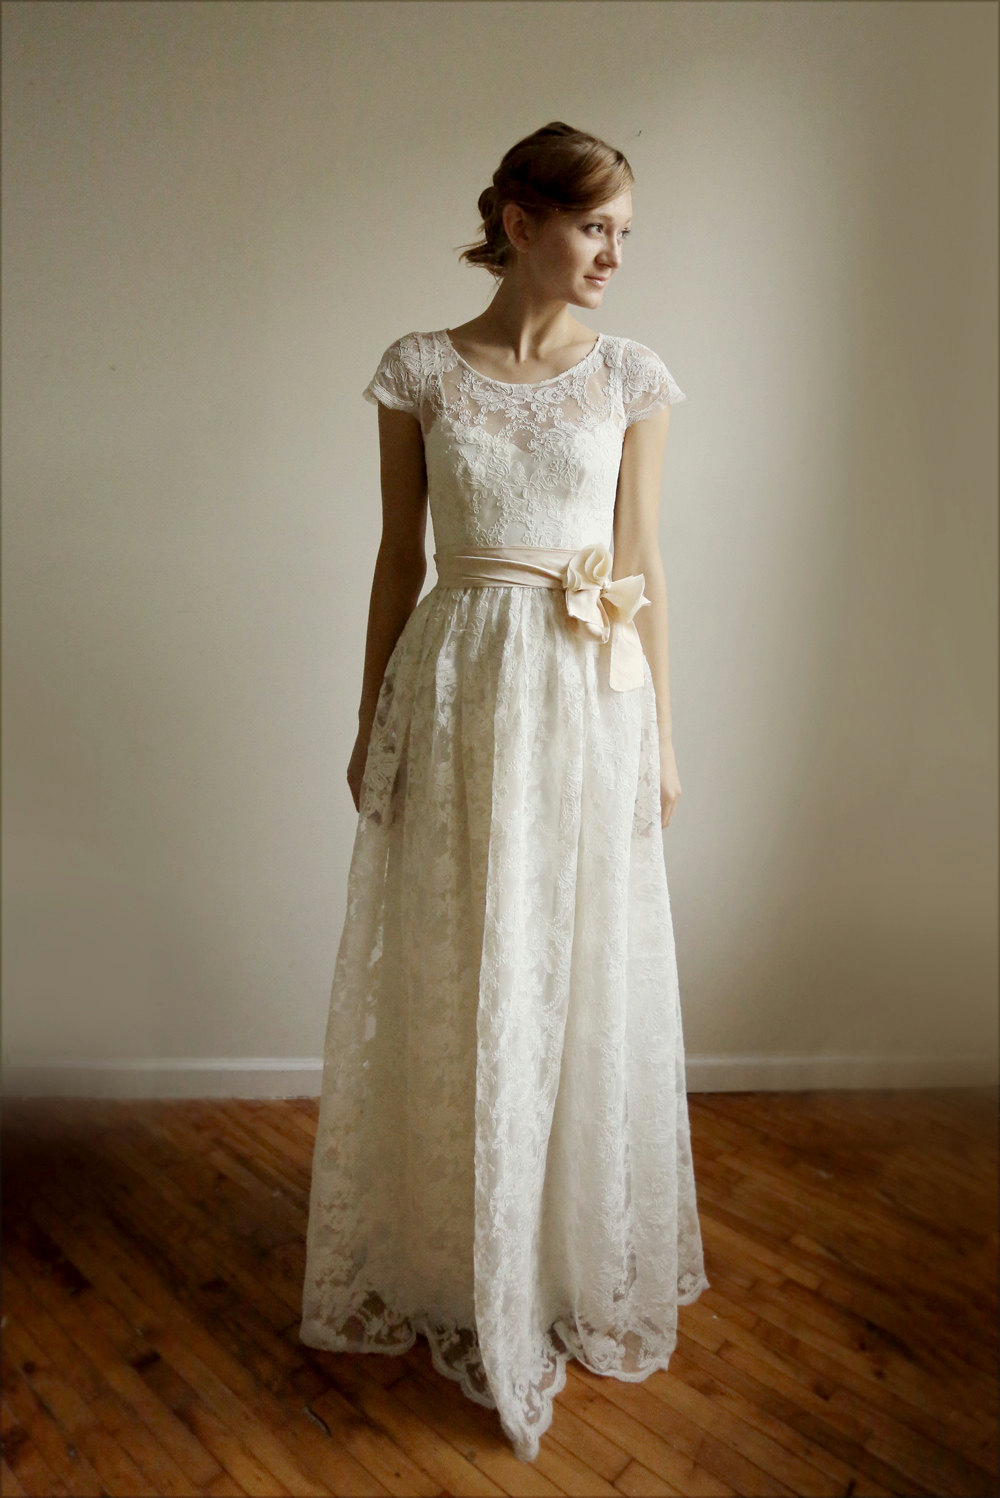 vintage frocks of fancy, best etsy wedding dresses, wonderxue, buying a wedding dress from etsy, vintage wedding dress shop, etsy bridesmaid dresses, vintage-inspired wedding dresses, vintage wedding dress tumblr